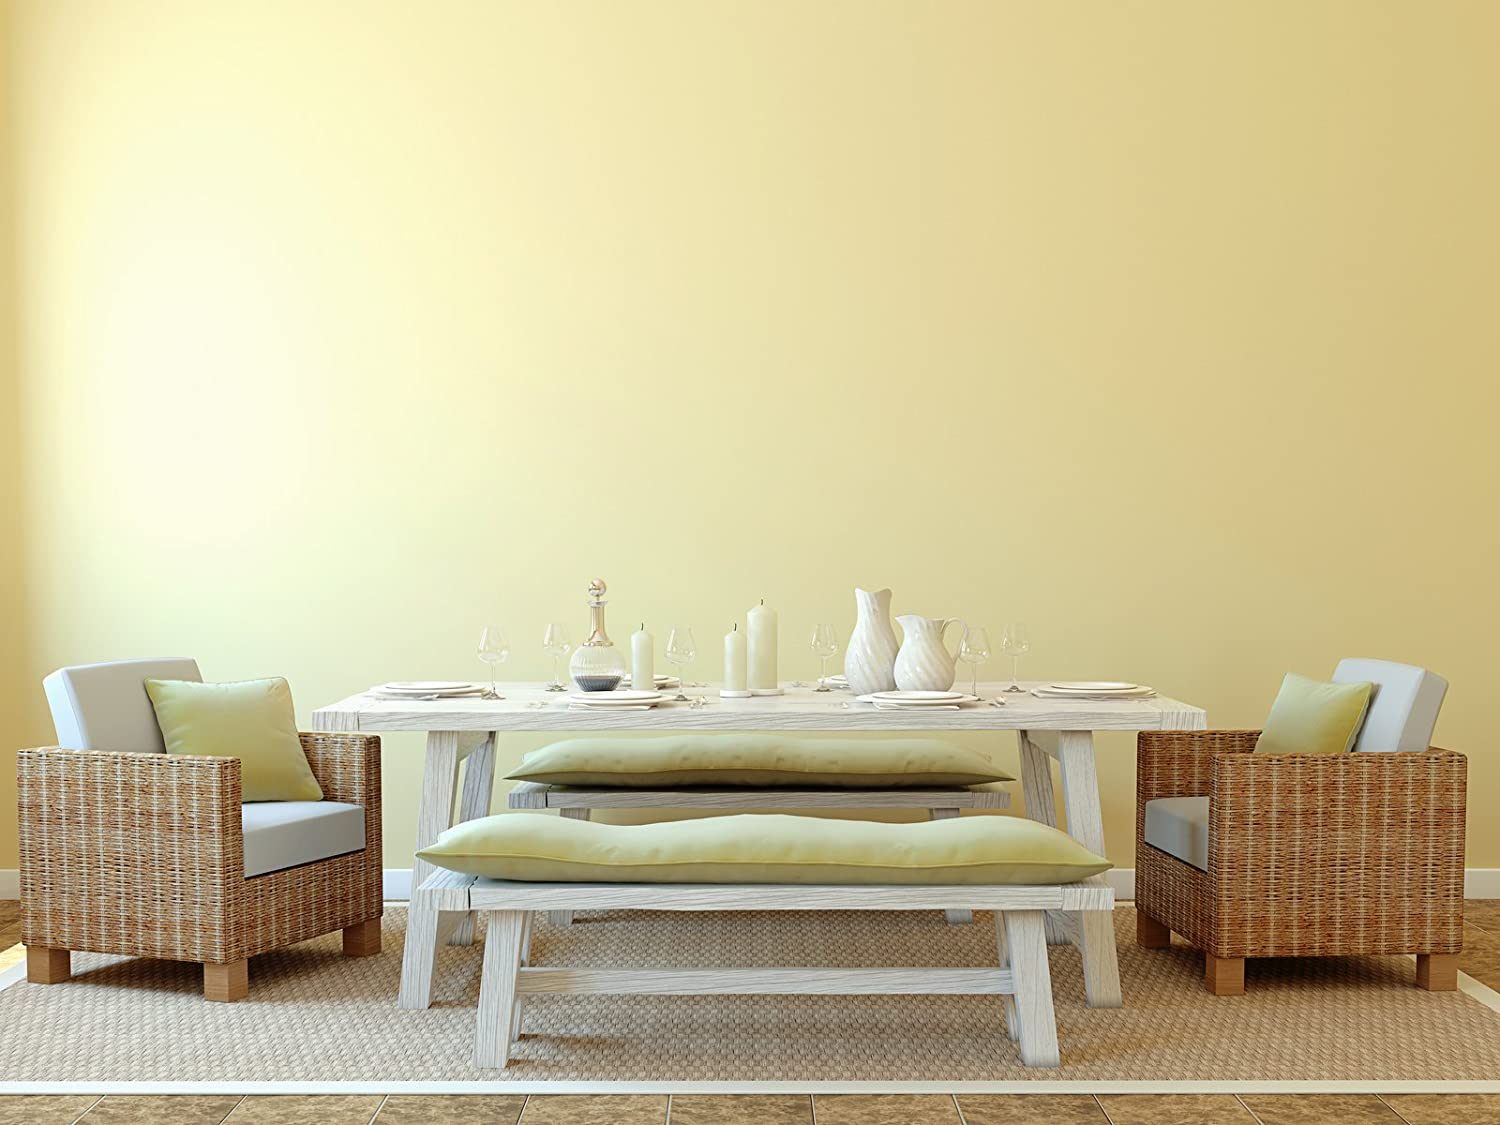 Removable Solid Wallpaper - Peel and Stick Paint - 23.5 inches Wide by 32 feet Long Roll (Butter Cream Yellow)